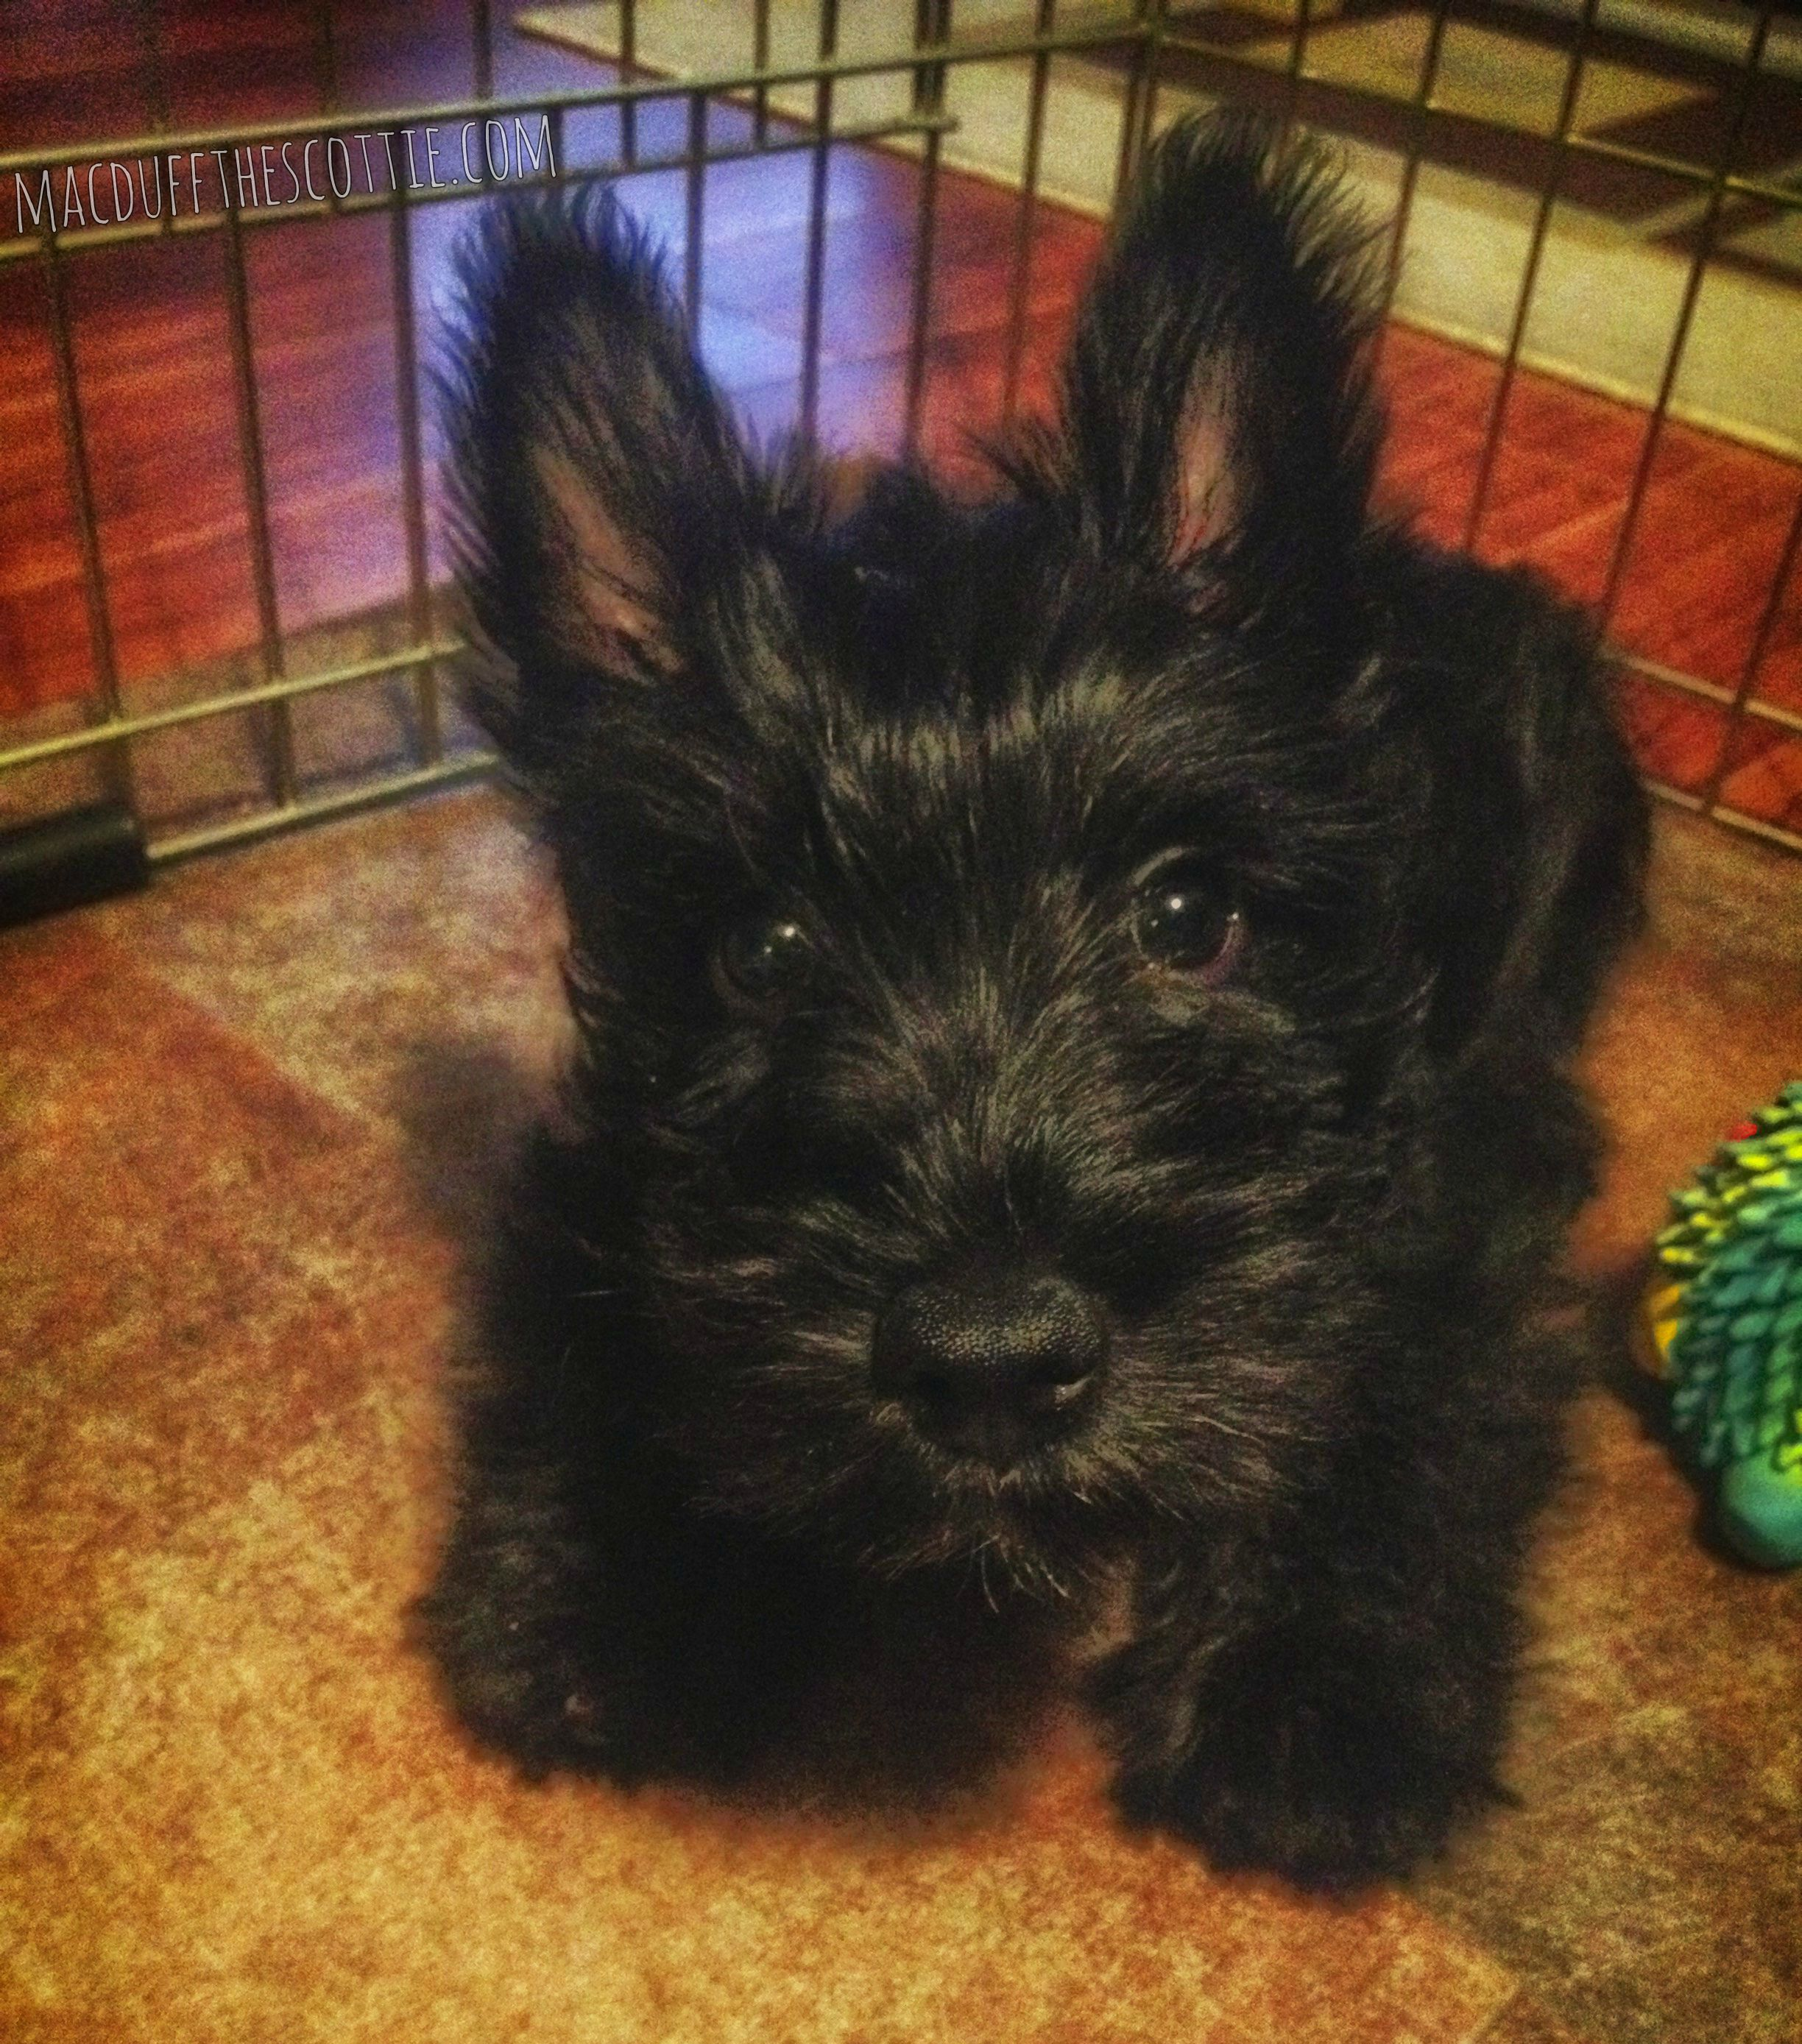 Macduff The Scottie Scottie Puppies Scottie Dog Puppies And